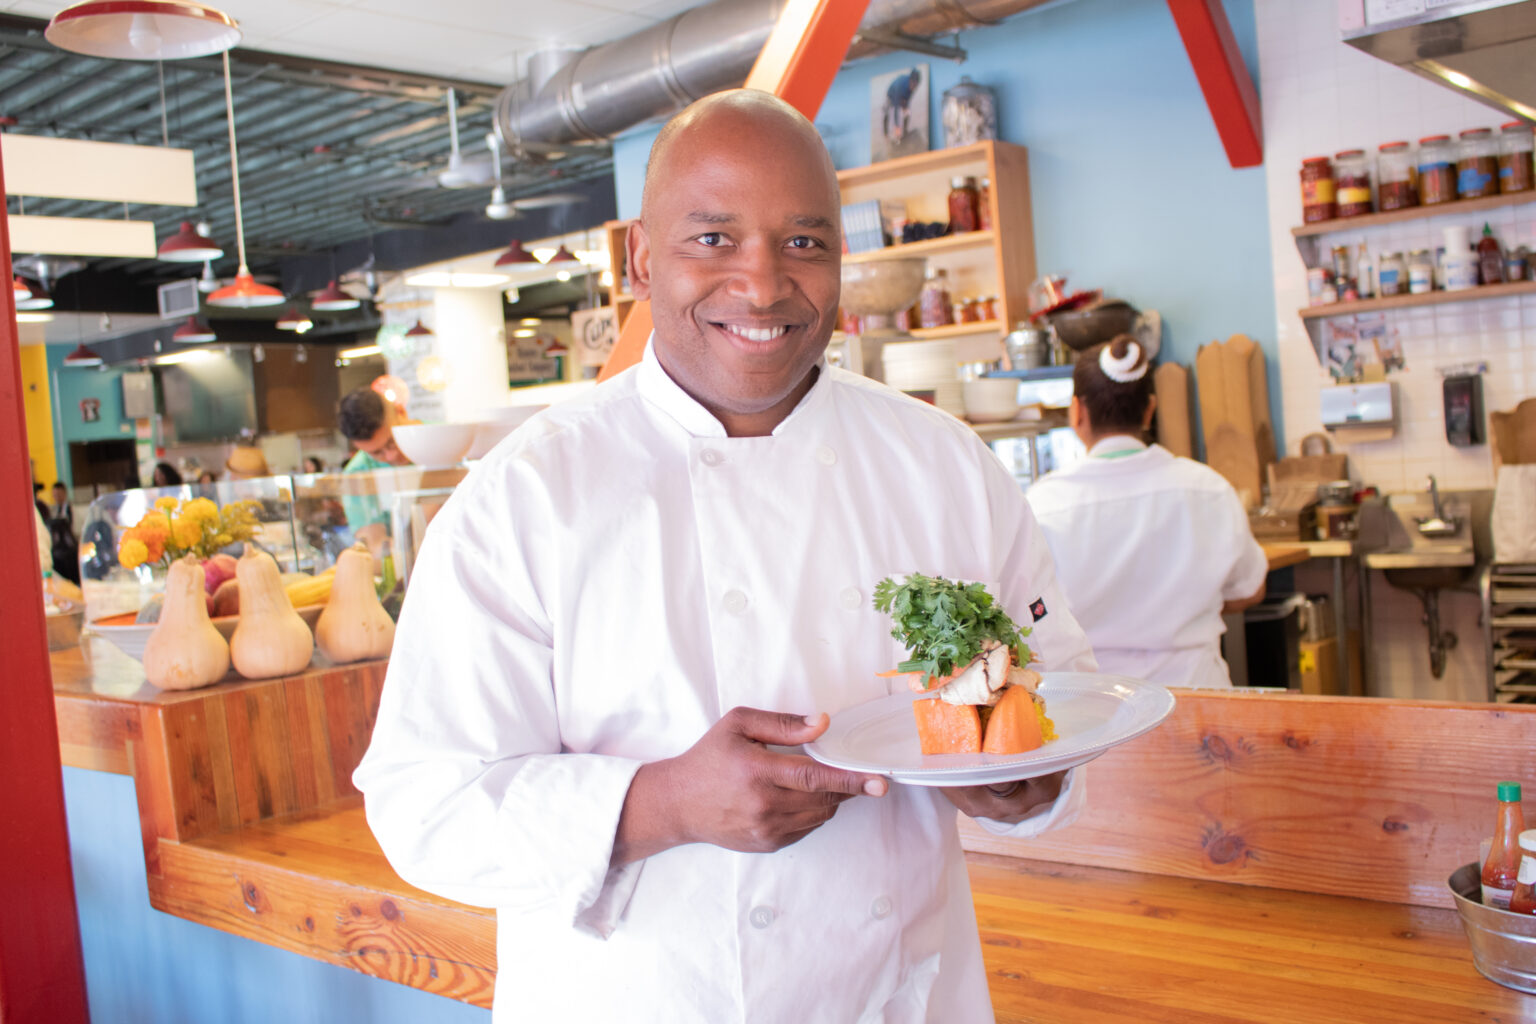 Private Chef Carl Williams Makes Culinary Artistry an Experience